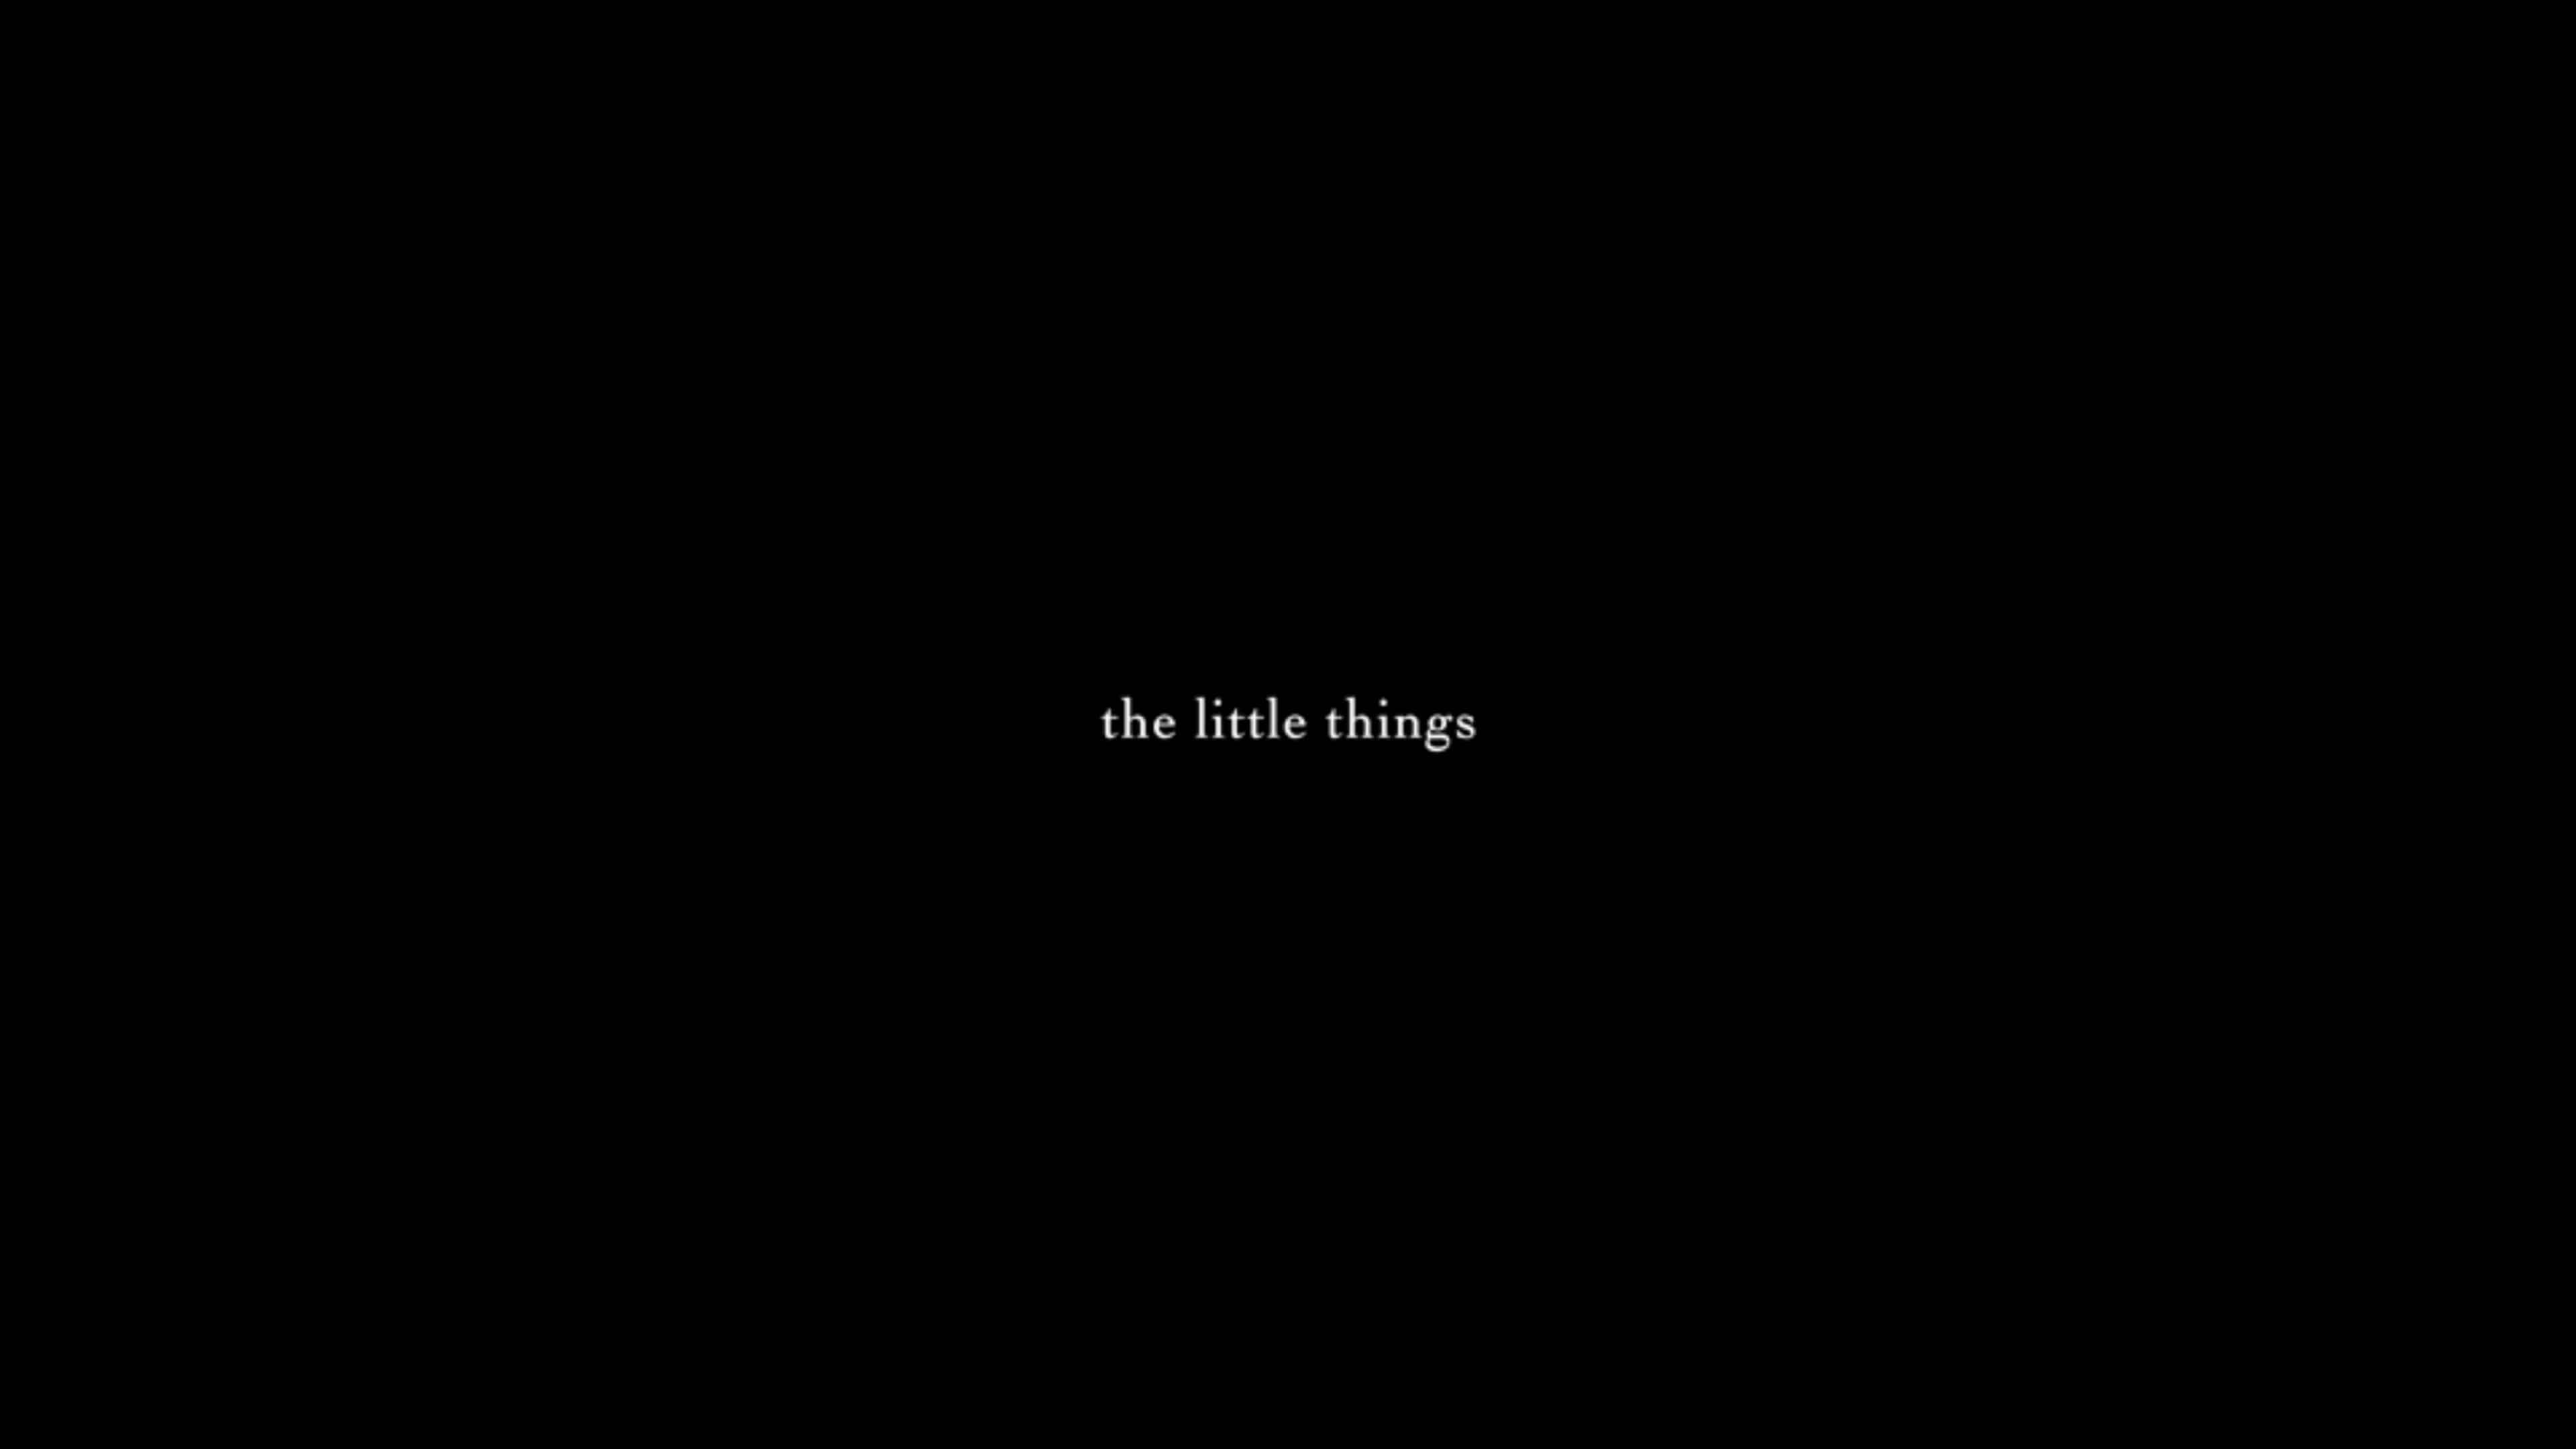 Title Card - The Little Things